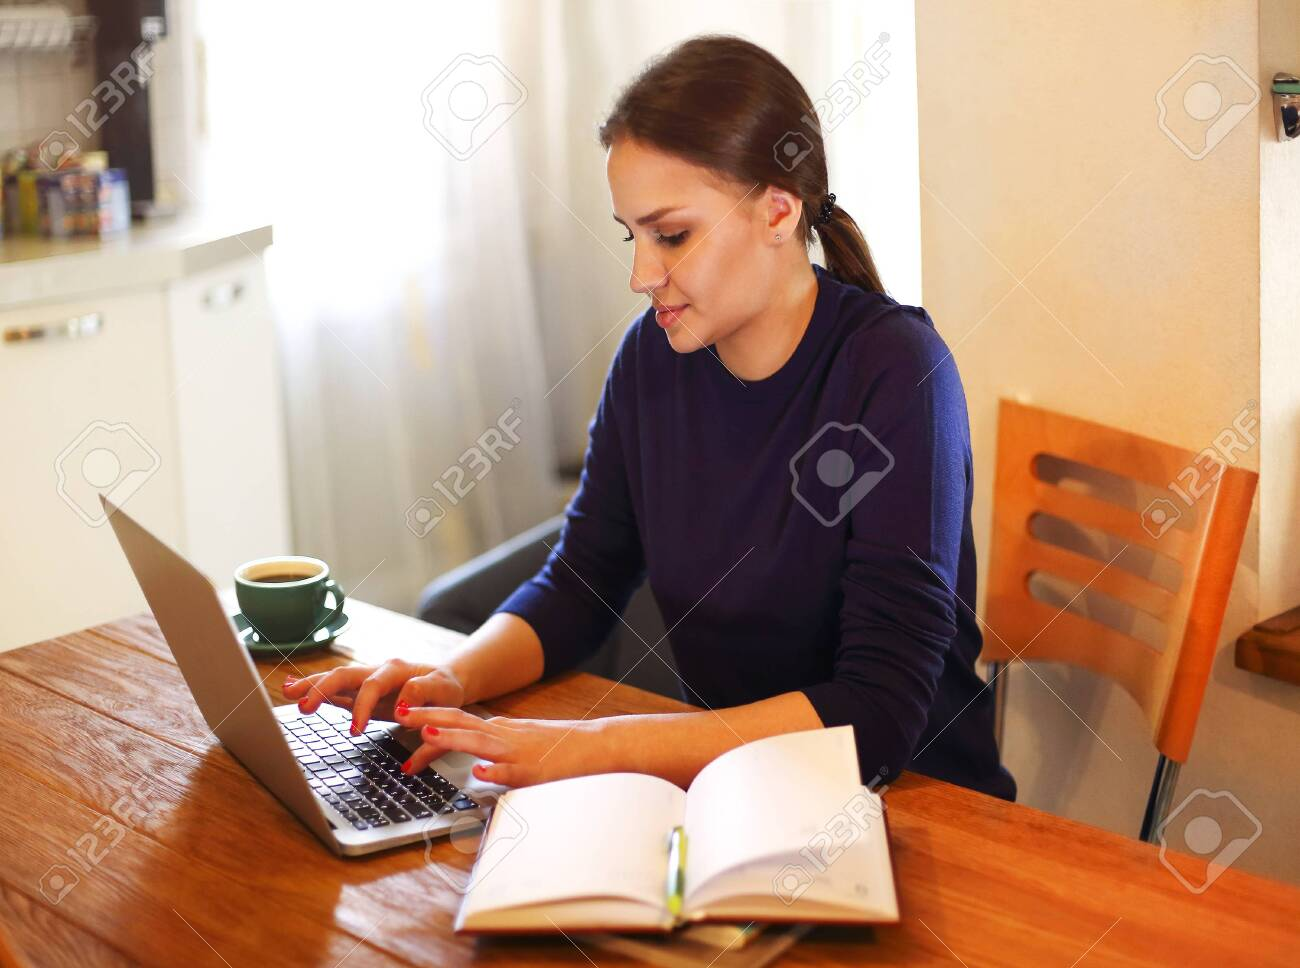 Youg female freelancer typing on laptop while working remotely from home at wooden table with books - 149361767